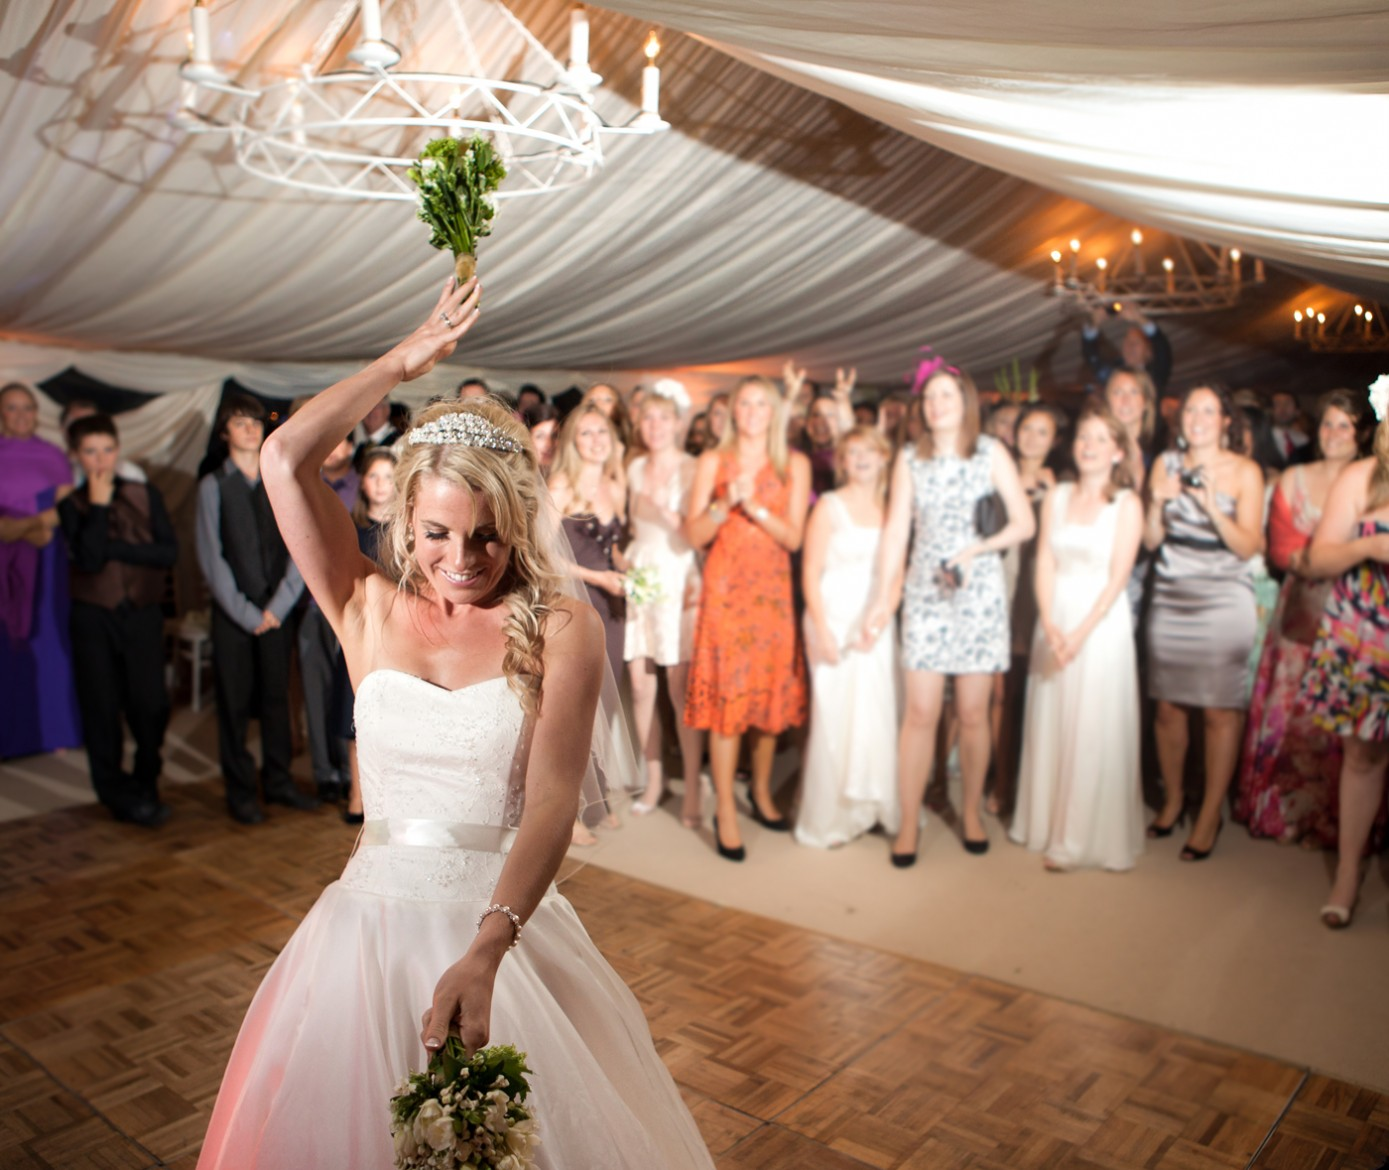 Real Wedding At St Mawes Castle, Cornwall